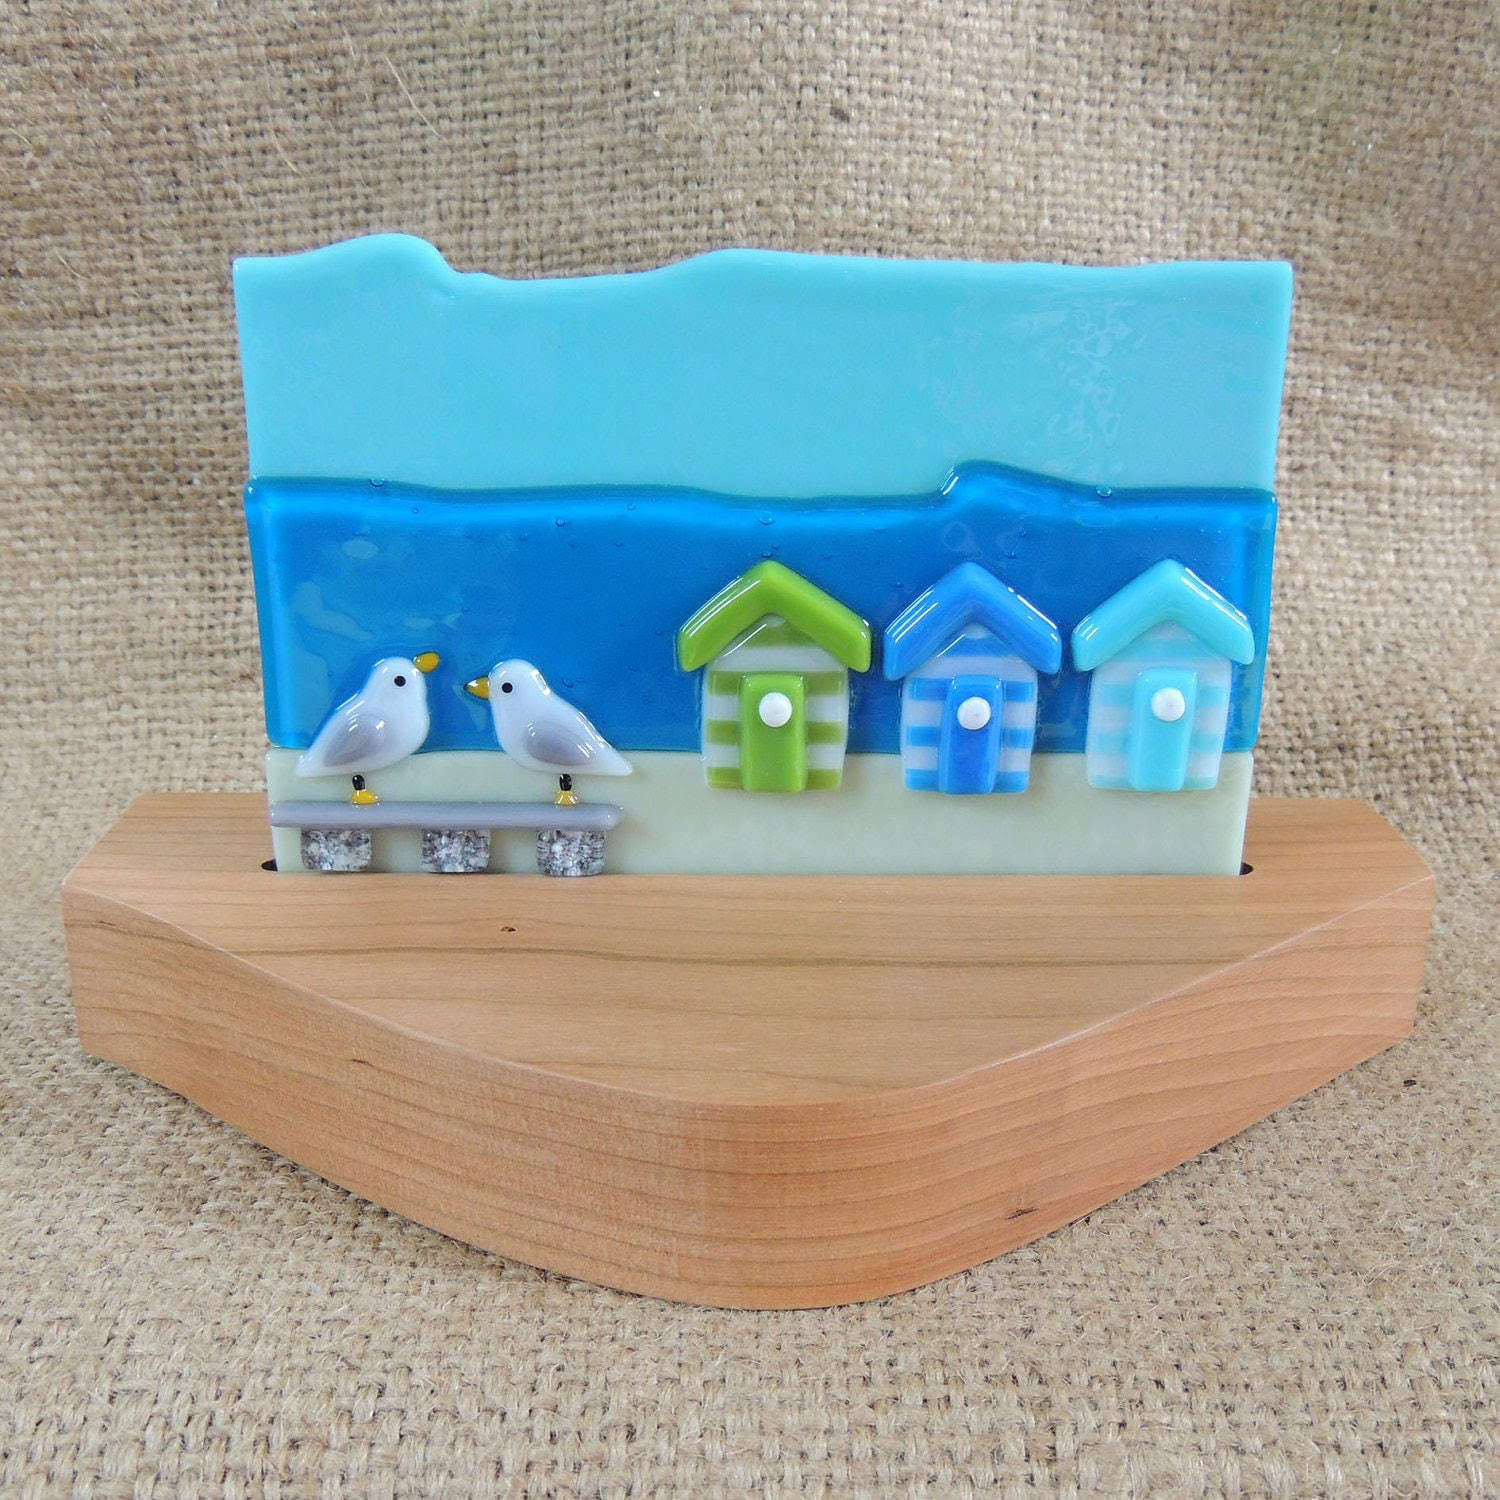 Handmade fused glass wood mounted beach scene by Fusenbeads